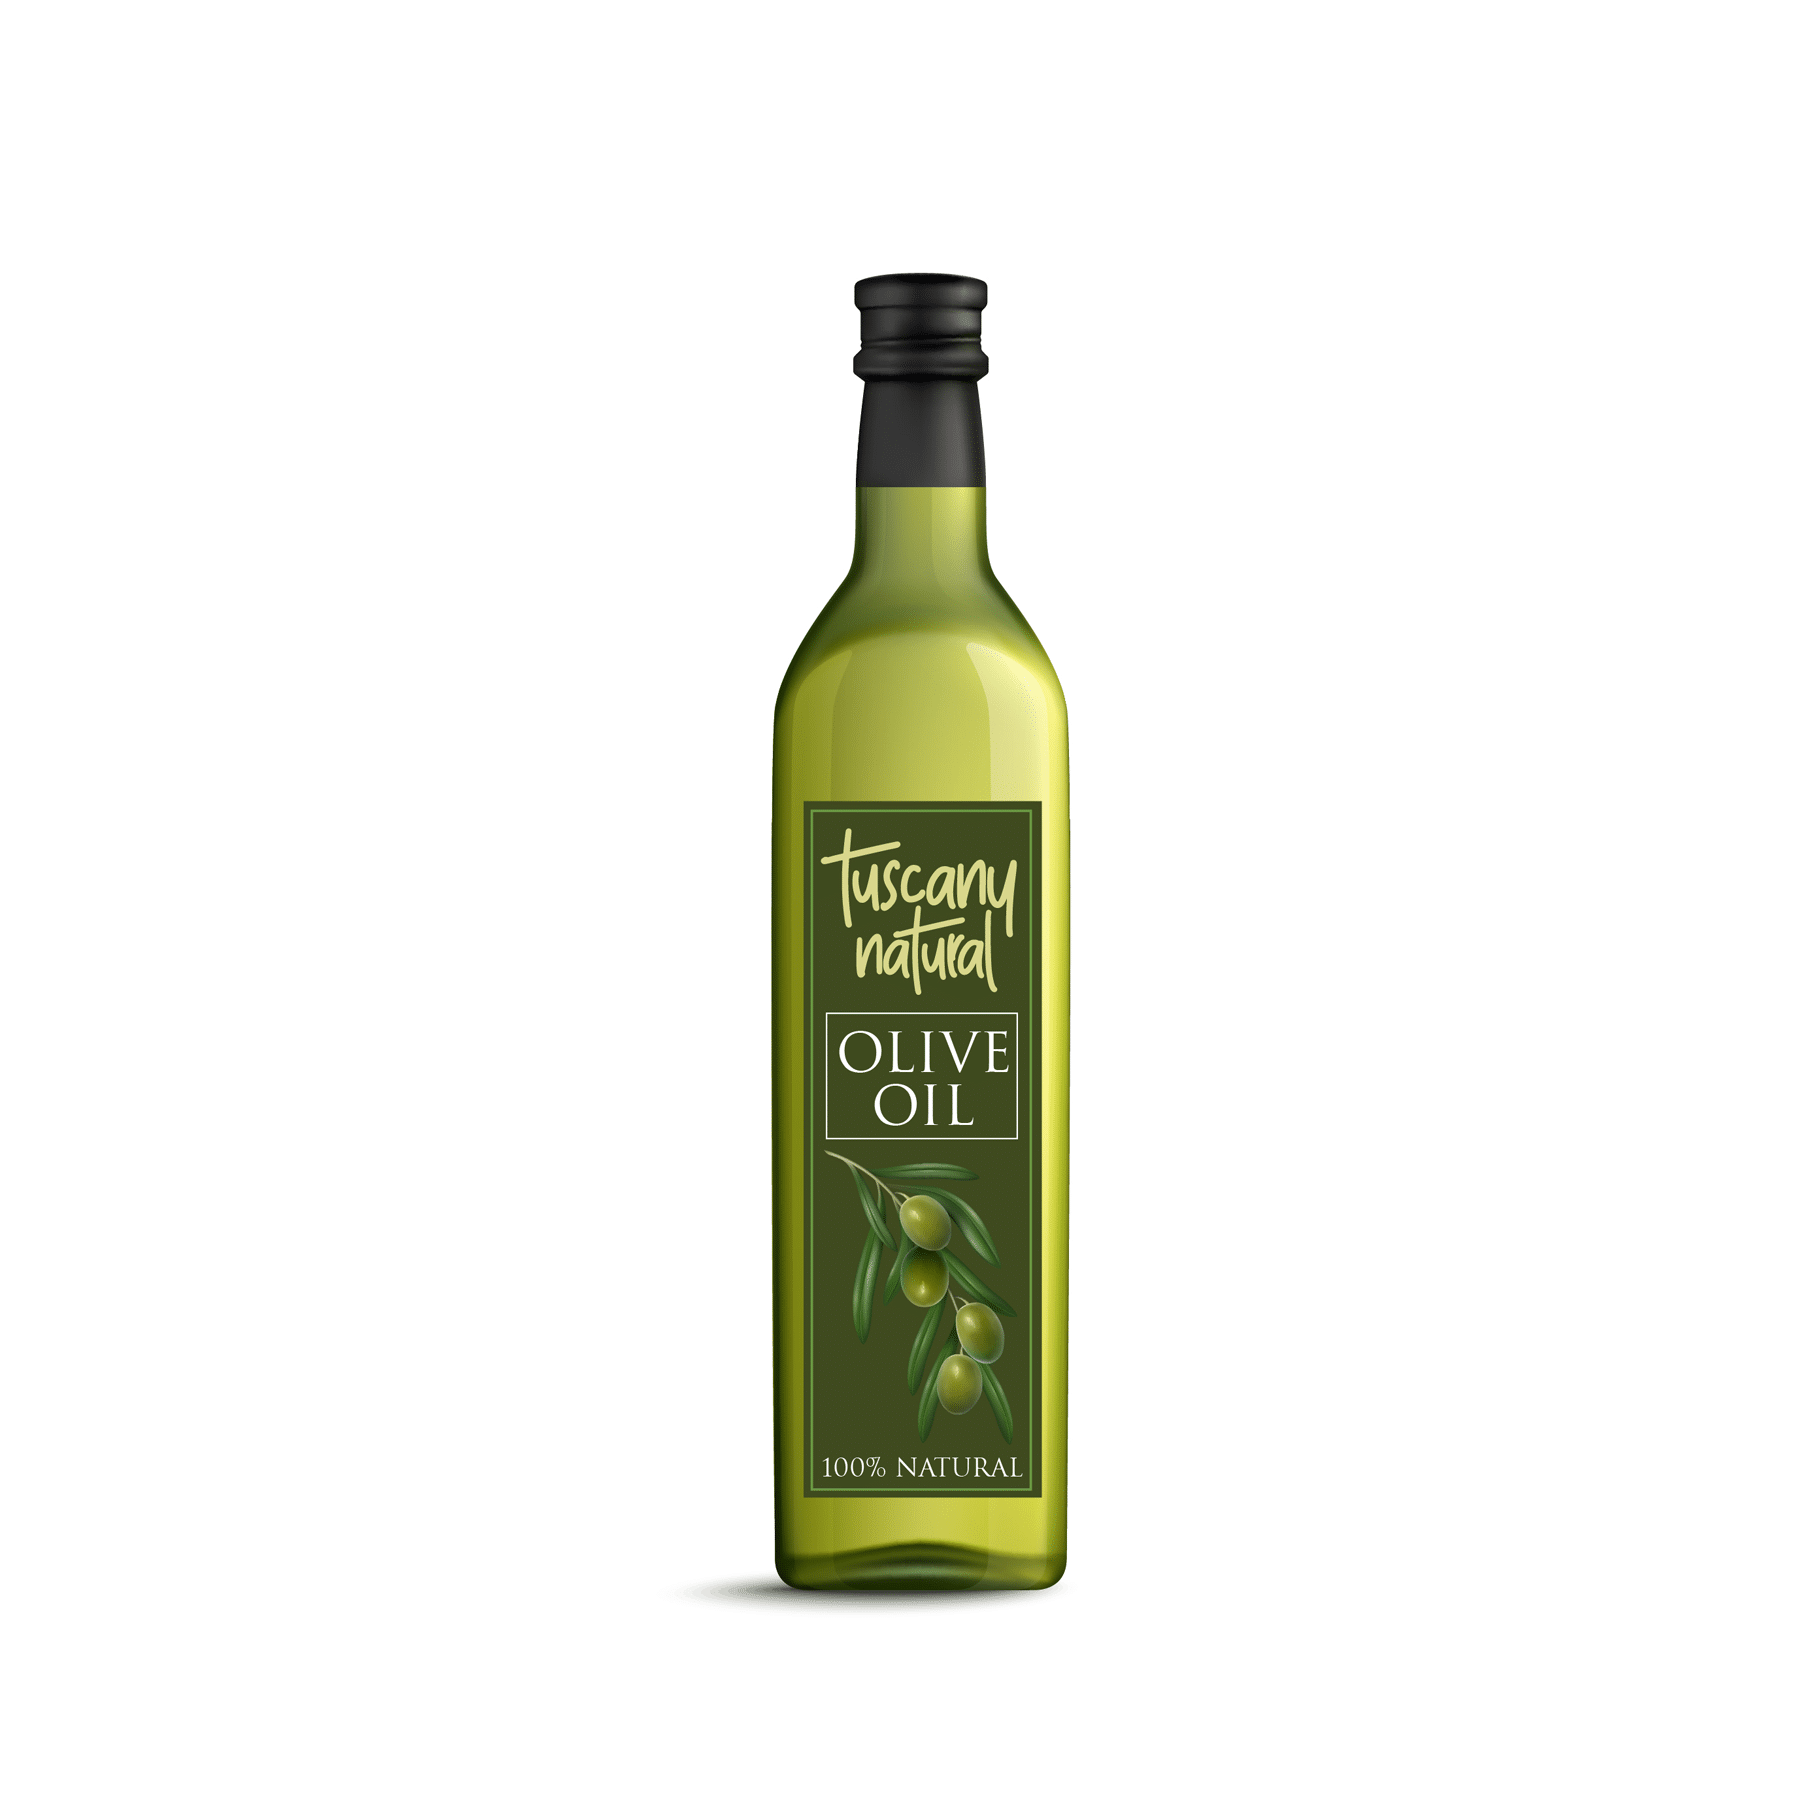 Tuscany Olive Oil Packaging